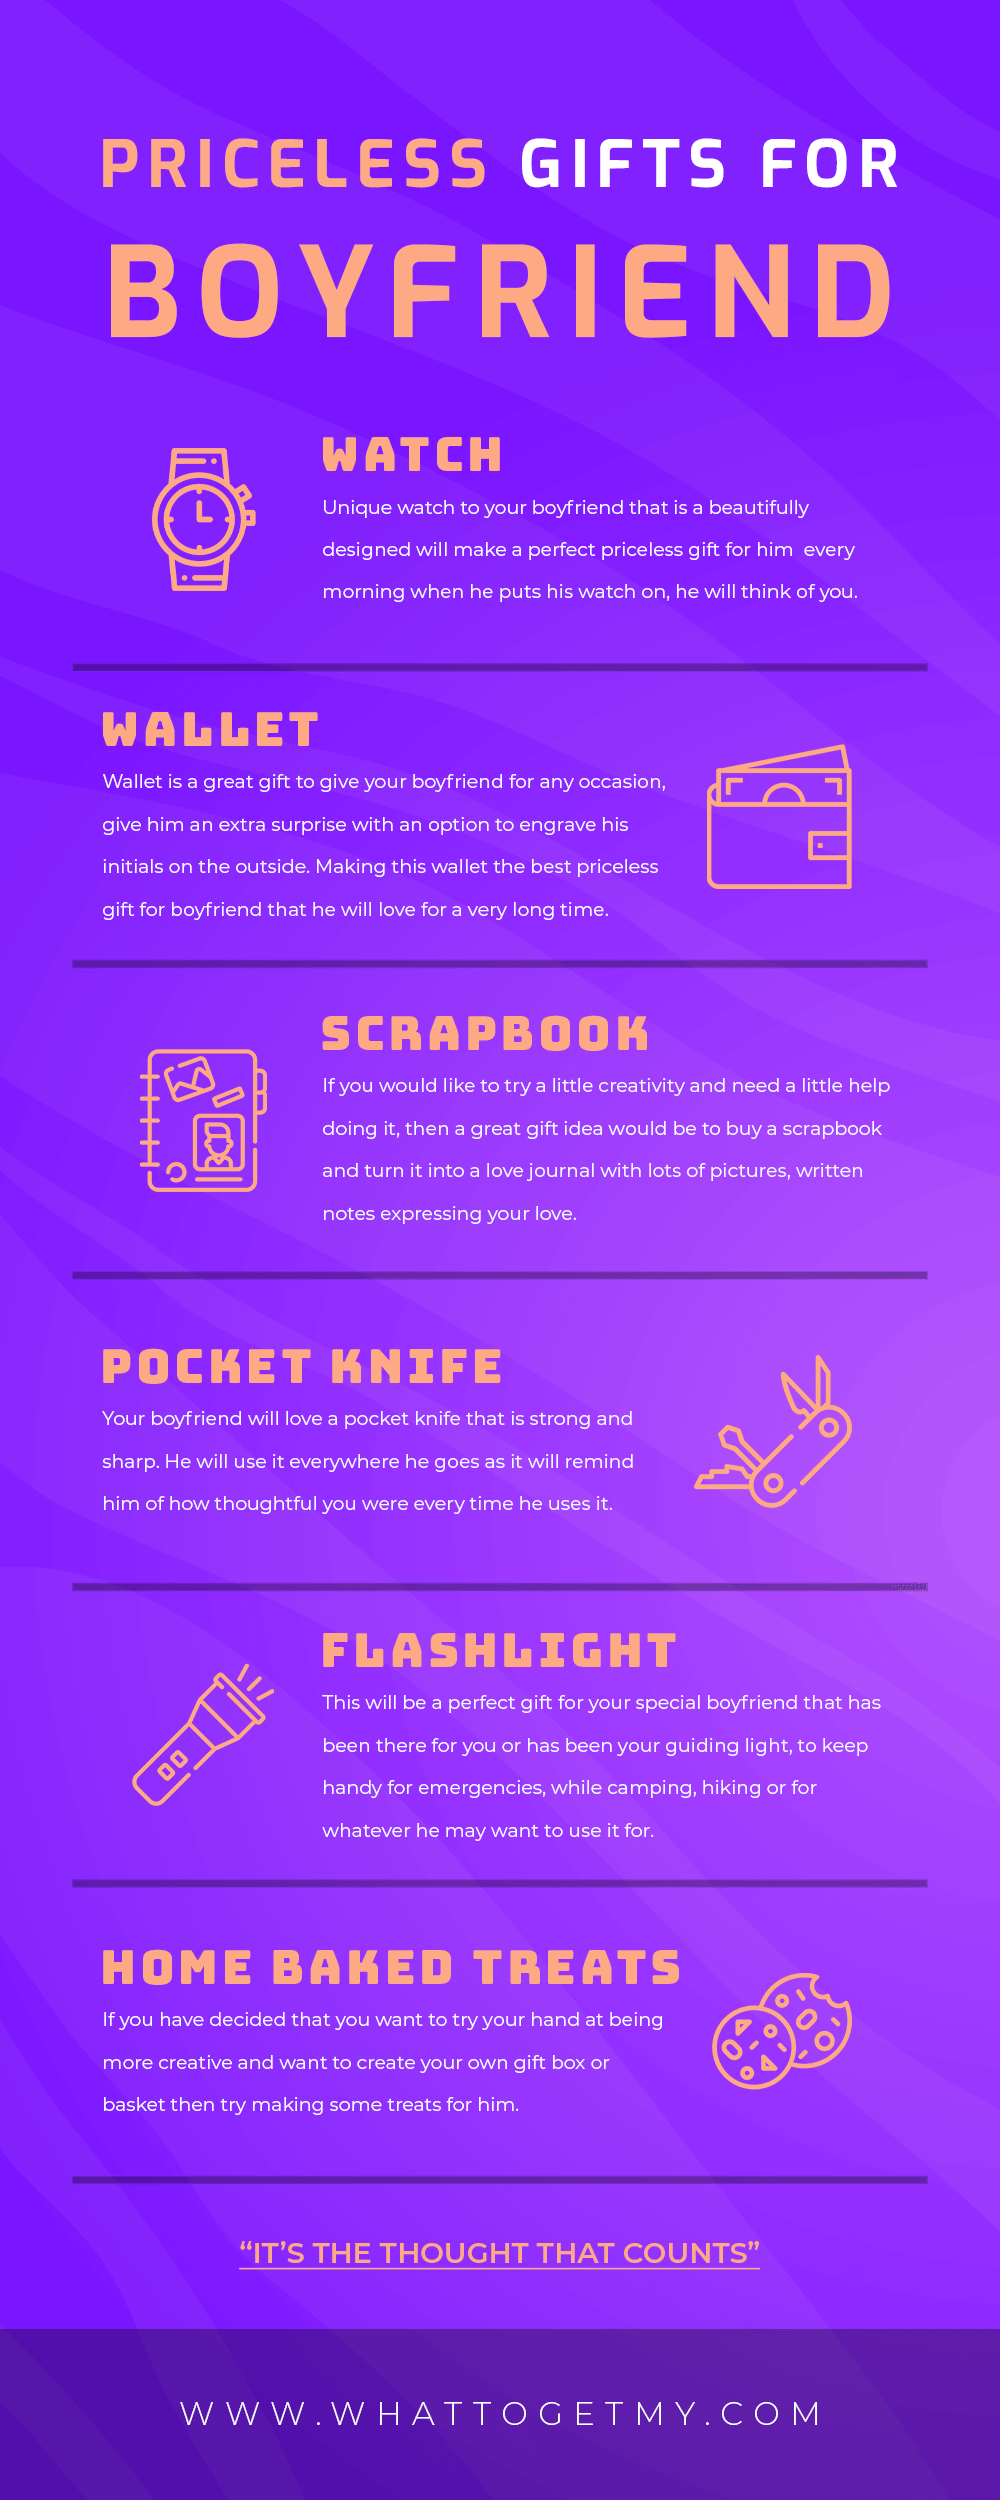 Infographic PRICELESS GIFTS FOR BOYFRIEND